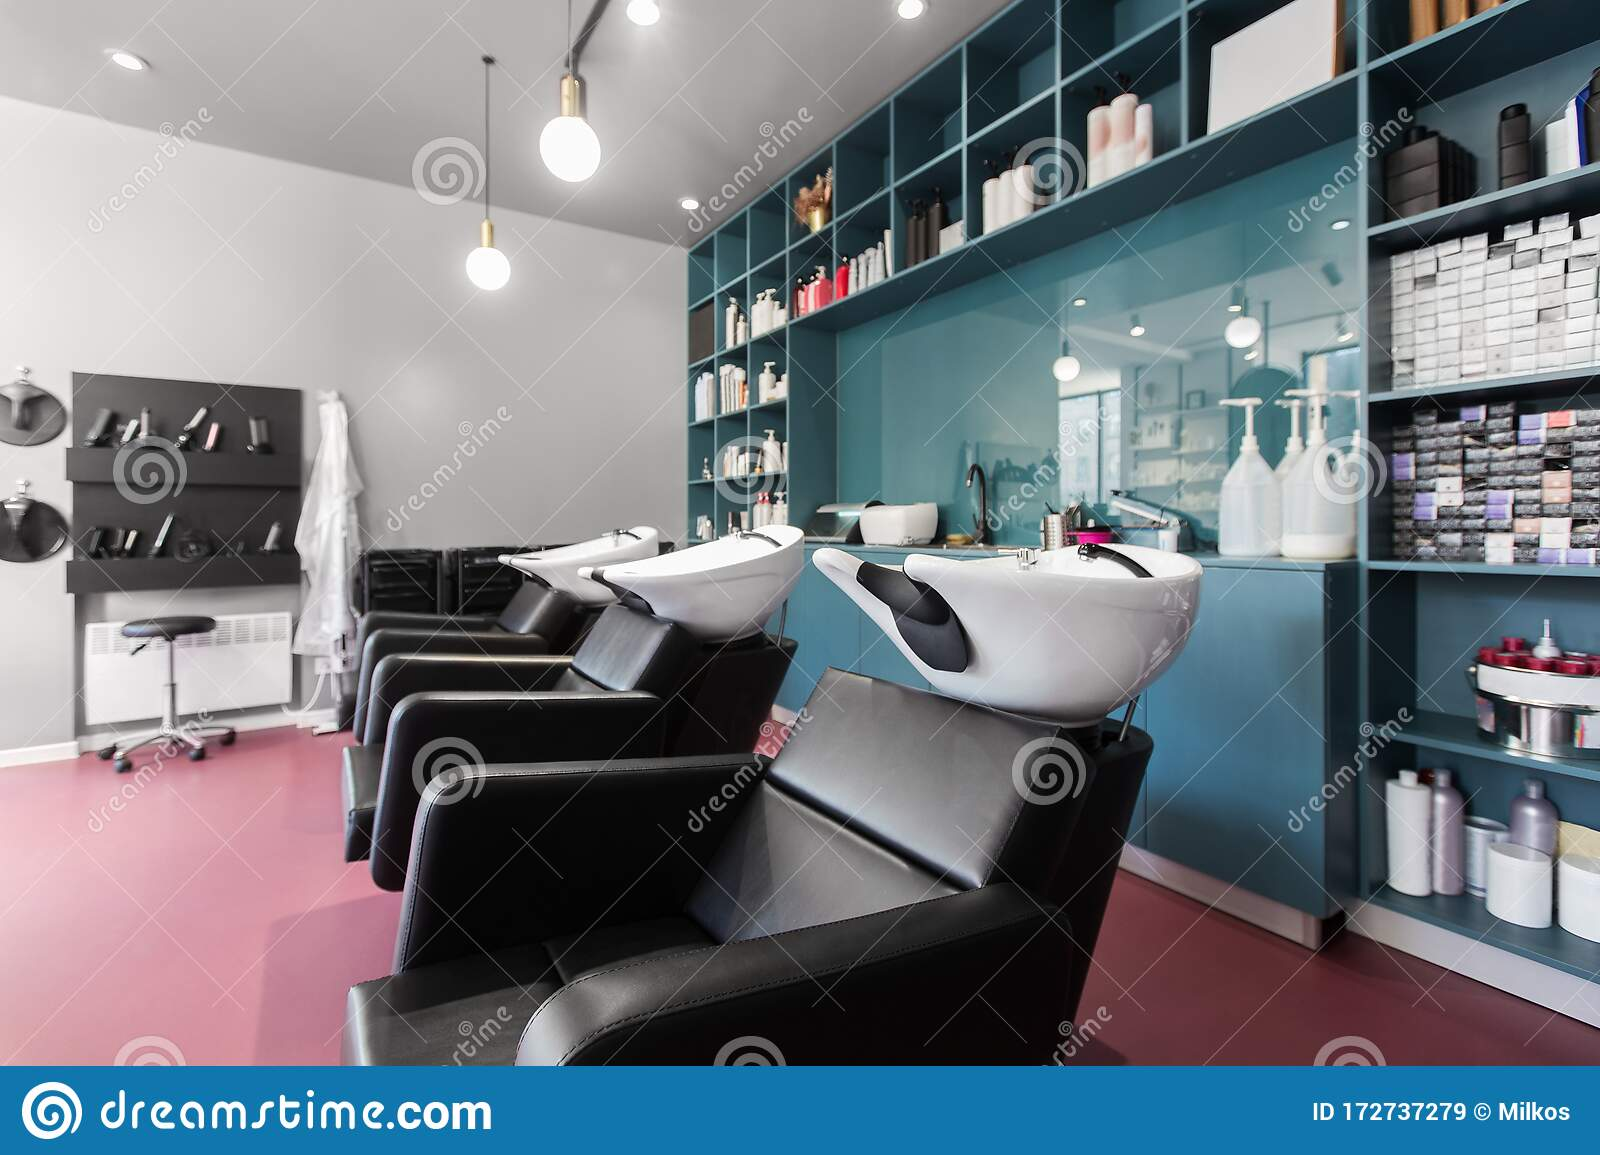 646 Hairdresser Brand Photos Free Royalty Free Stock Photos From Dreamstime